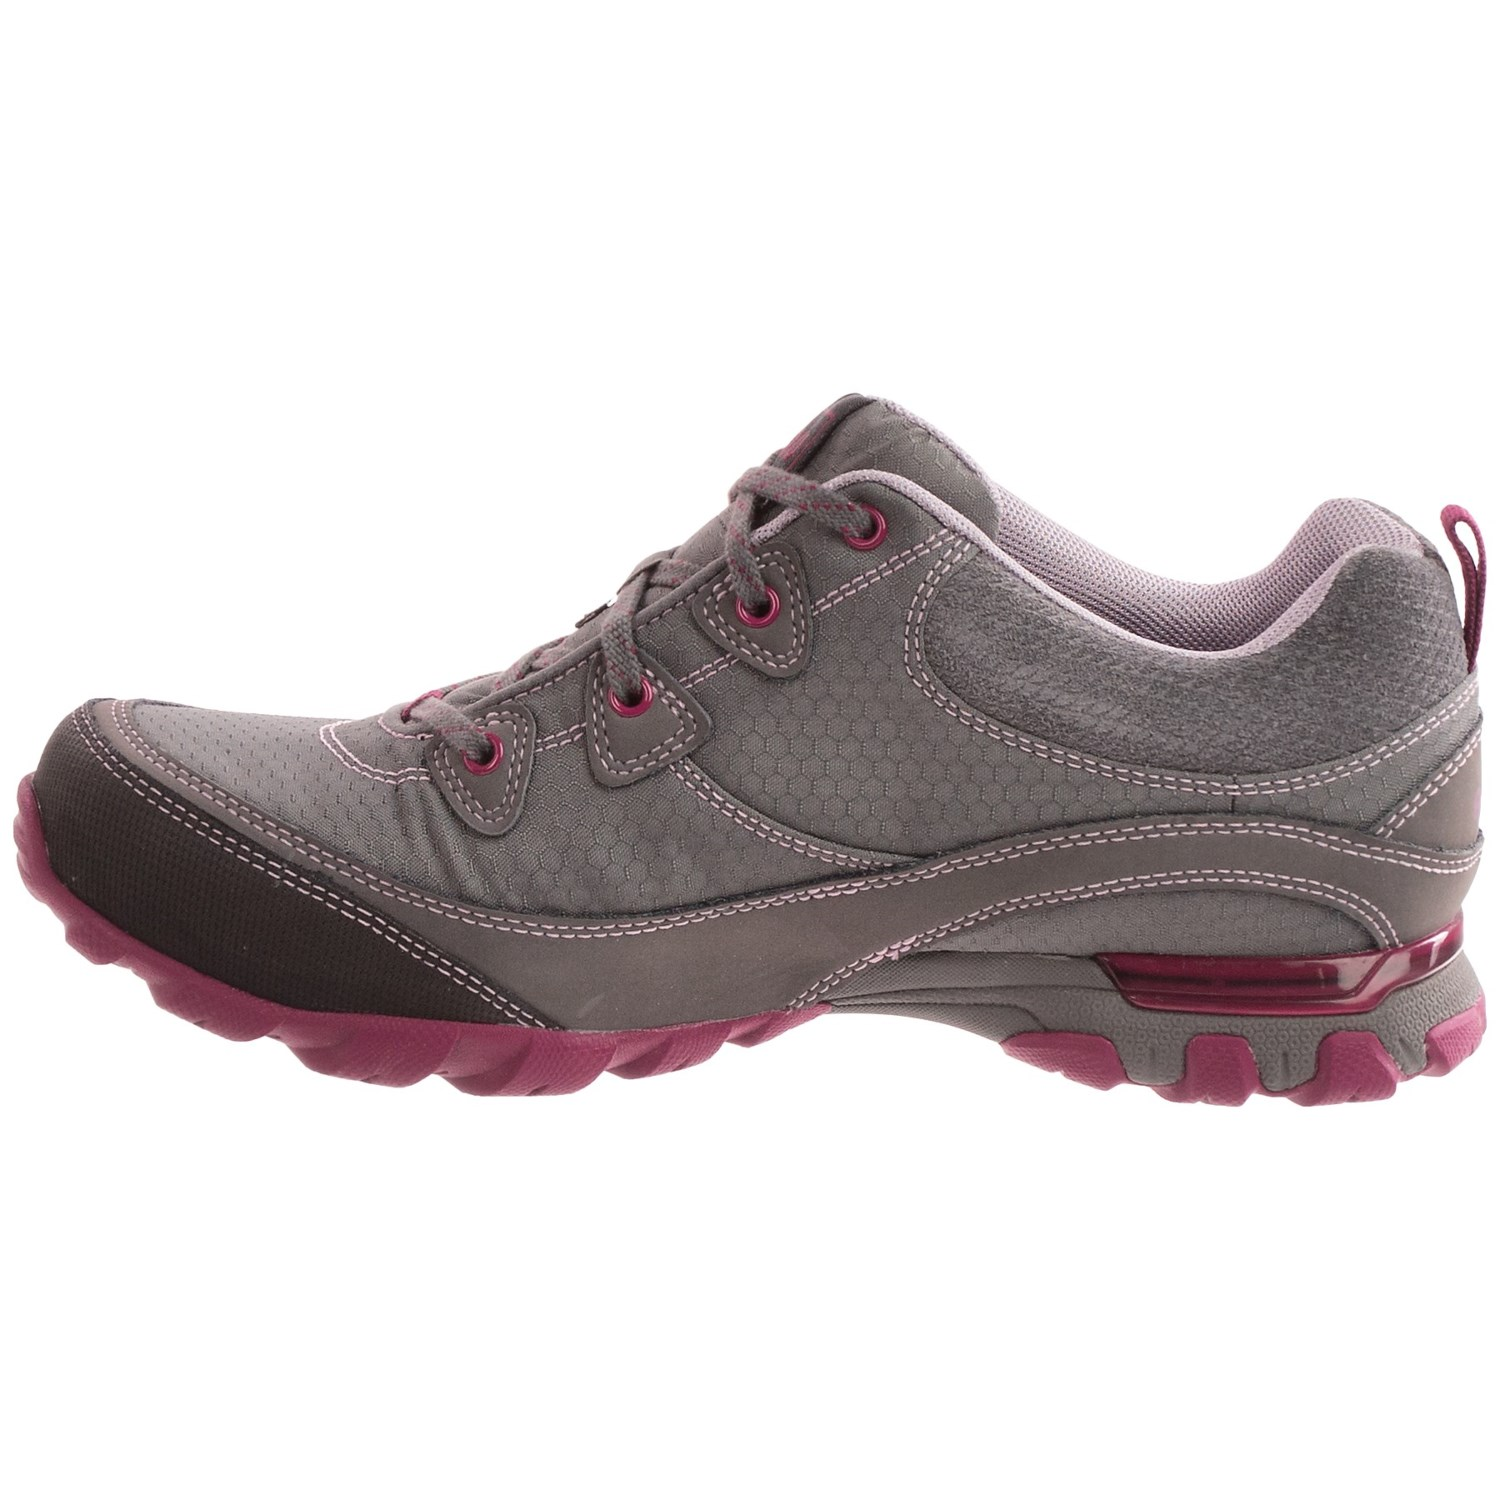 Ahnu Sugarpine Hiking Shoes For Women Save 53